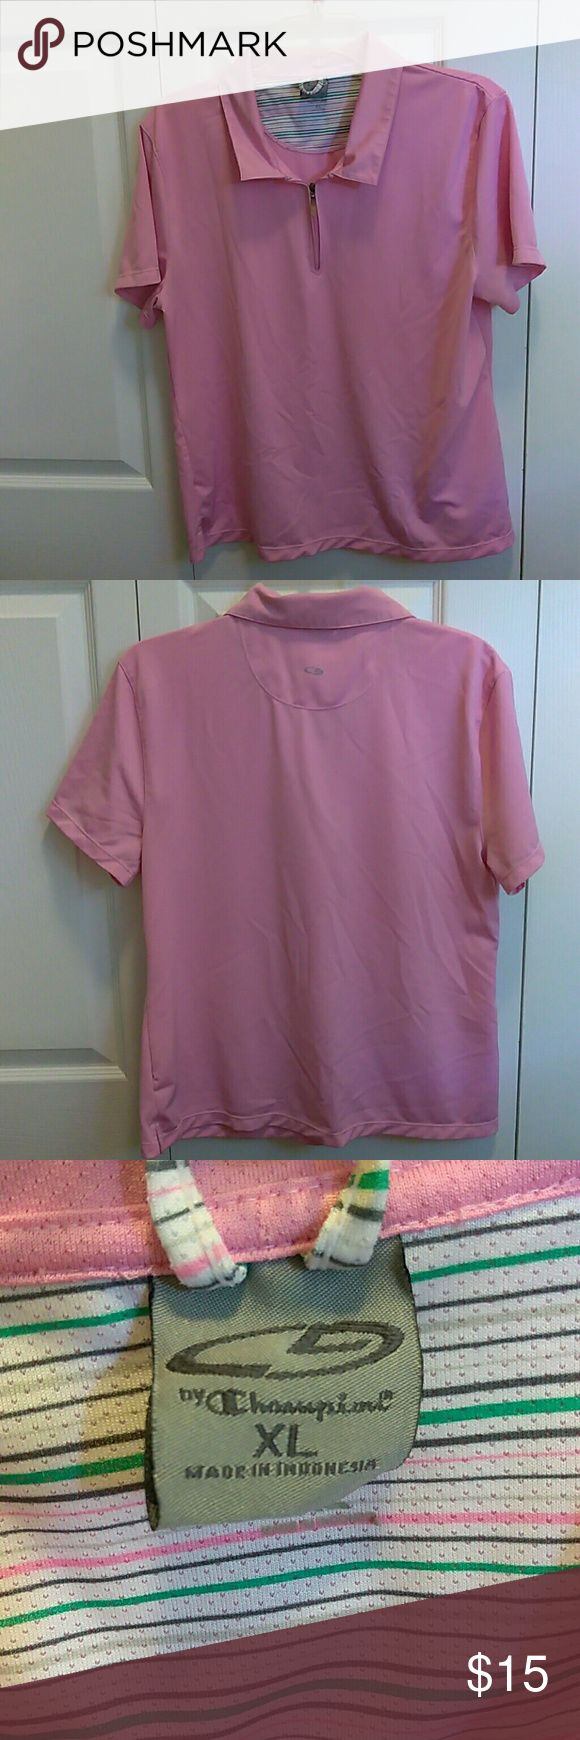 XL Lightweight Women's golf shirt C9 XL champion pink golf shirt cap sleeves lightweight has been hanging in my closet mark under flap snags by shoulder seam and on front by stomach area, also on back of arm but still in good condition C9 Tops Tees - Short Sleeve